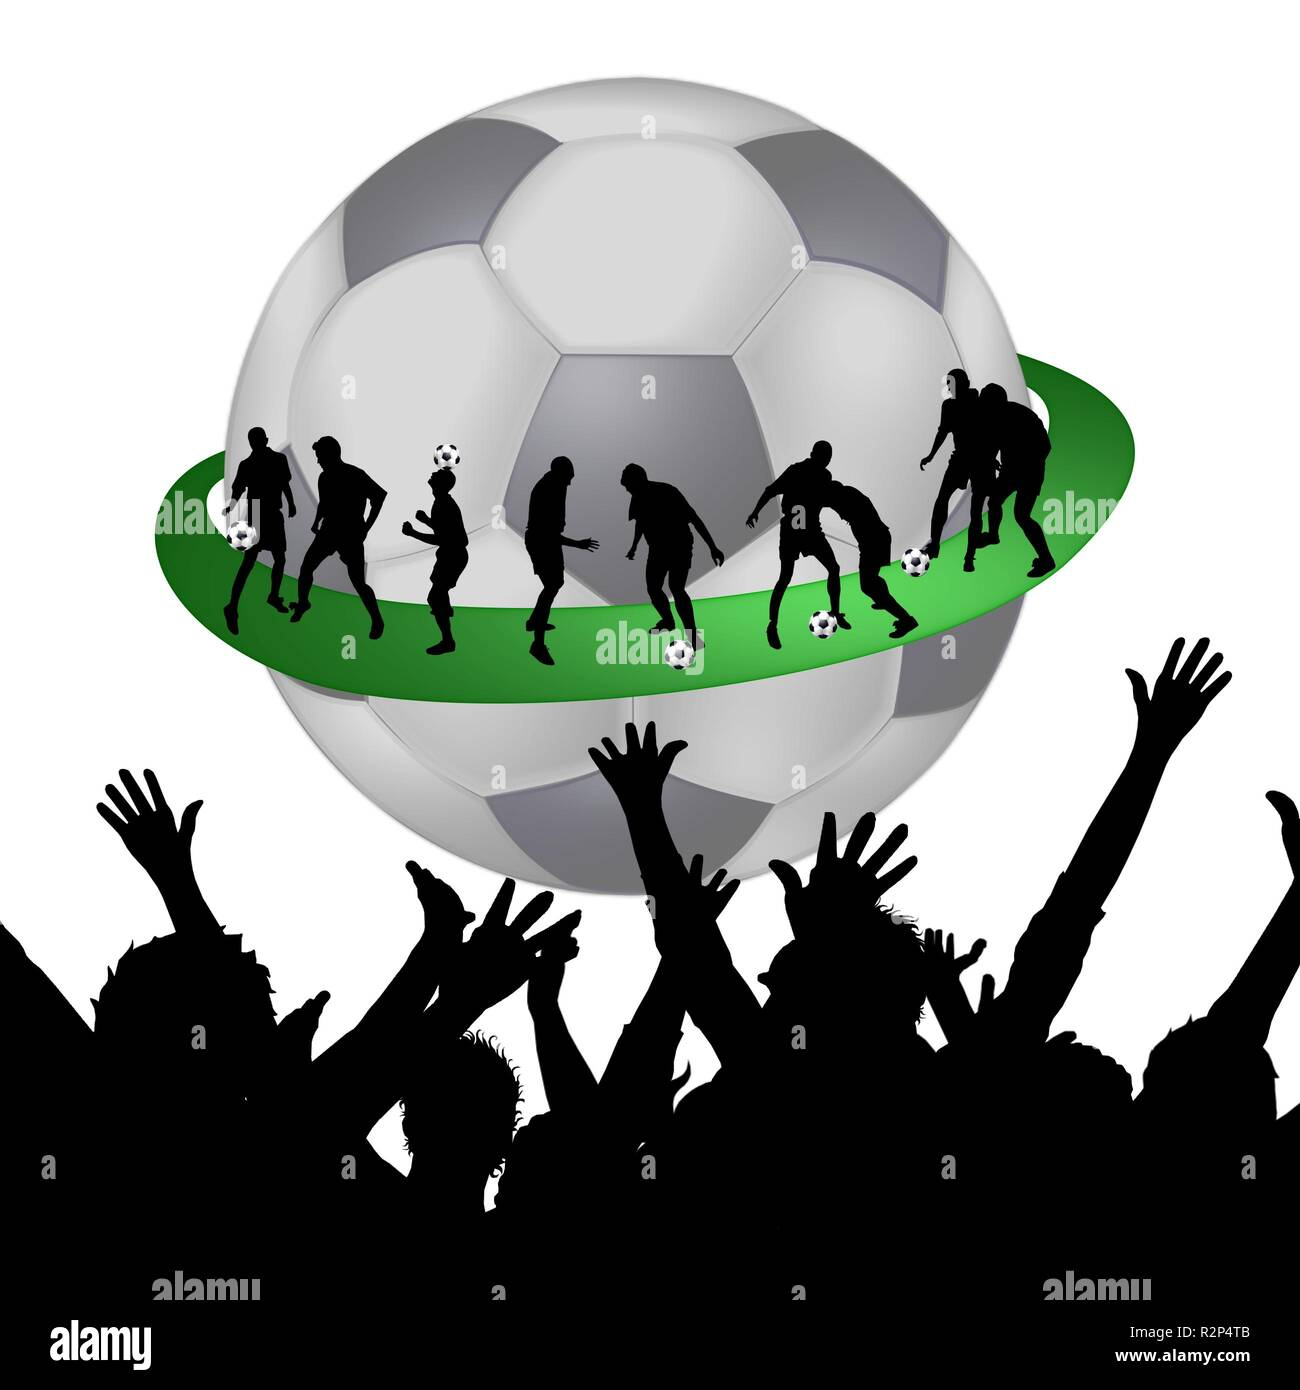 fusballfans Stock Photo